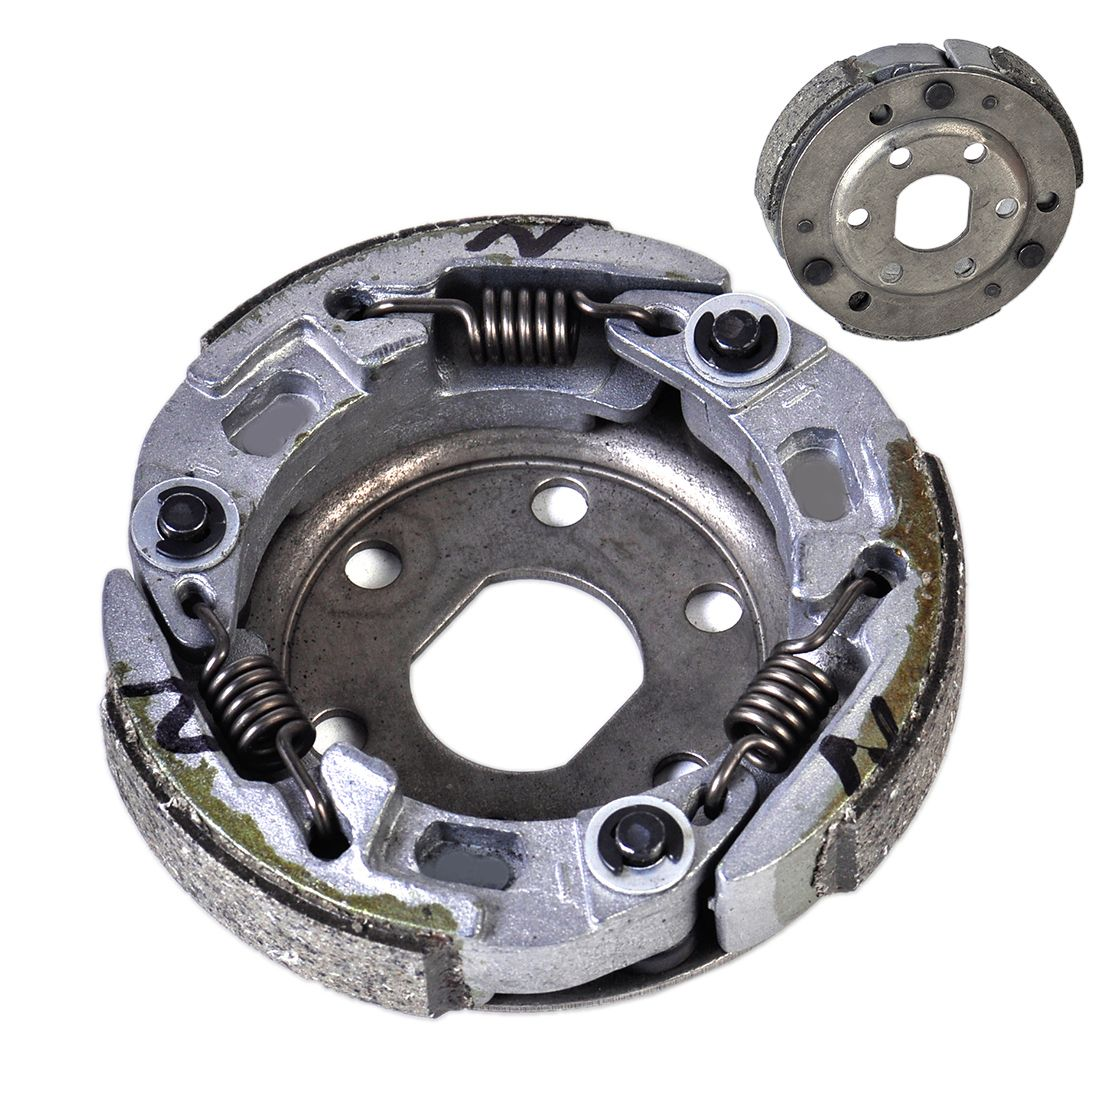 beler Performance Racing Clutch Replacement for GY6 139QMB 50cc Scooter ATV Quad Moped Loncin Yamaha Linhai Zongshen Buyan